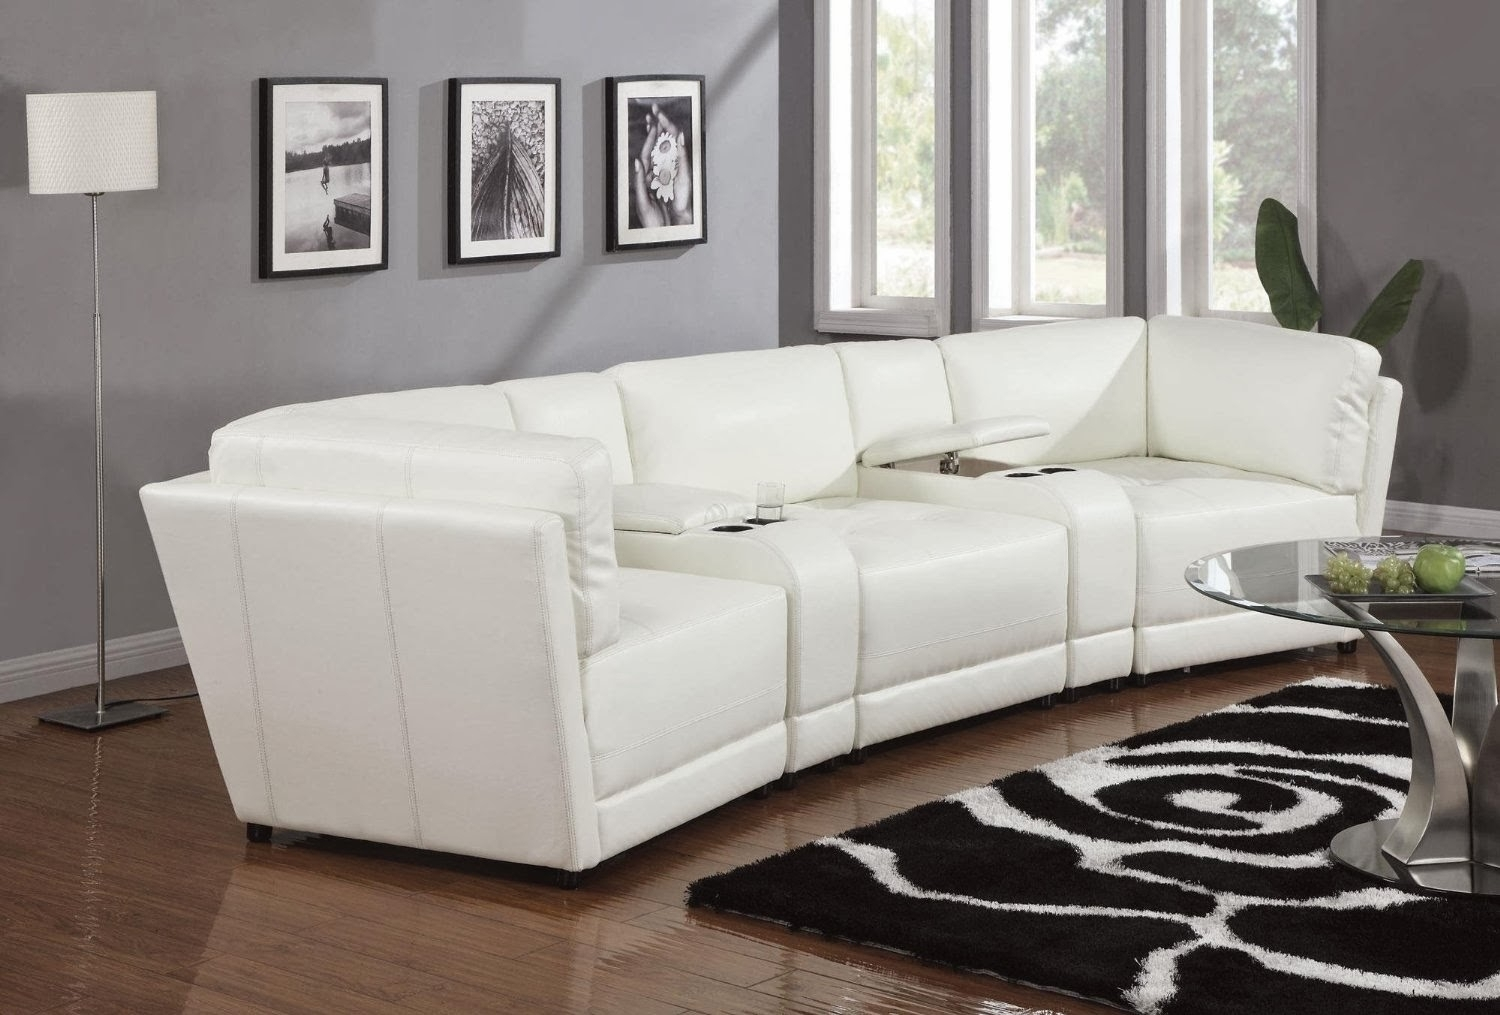 Best Petite Sectional Sofa 82 For Sectional Sofas Vancouver Bc With With Vancouver Bc Sectional Sofas (View 2 of 10)